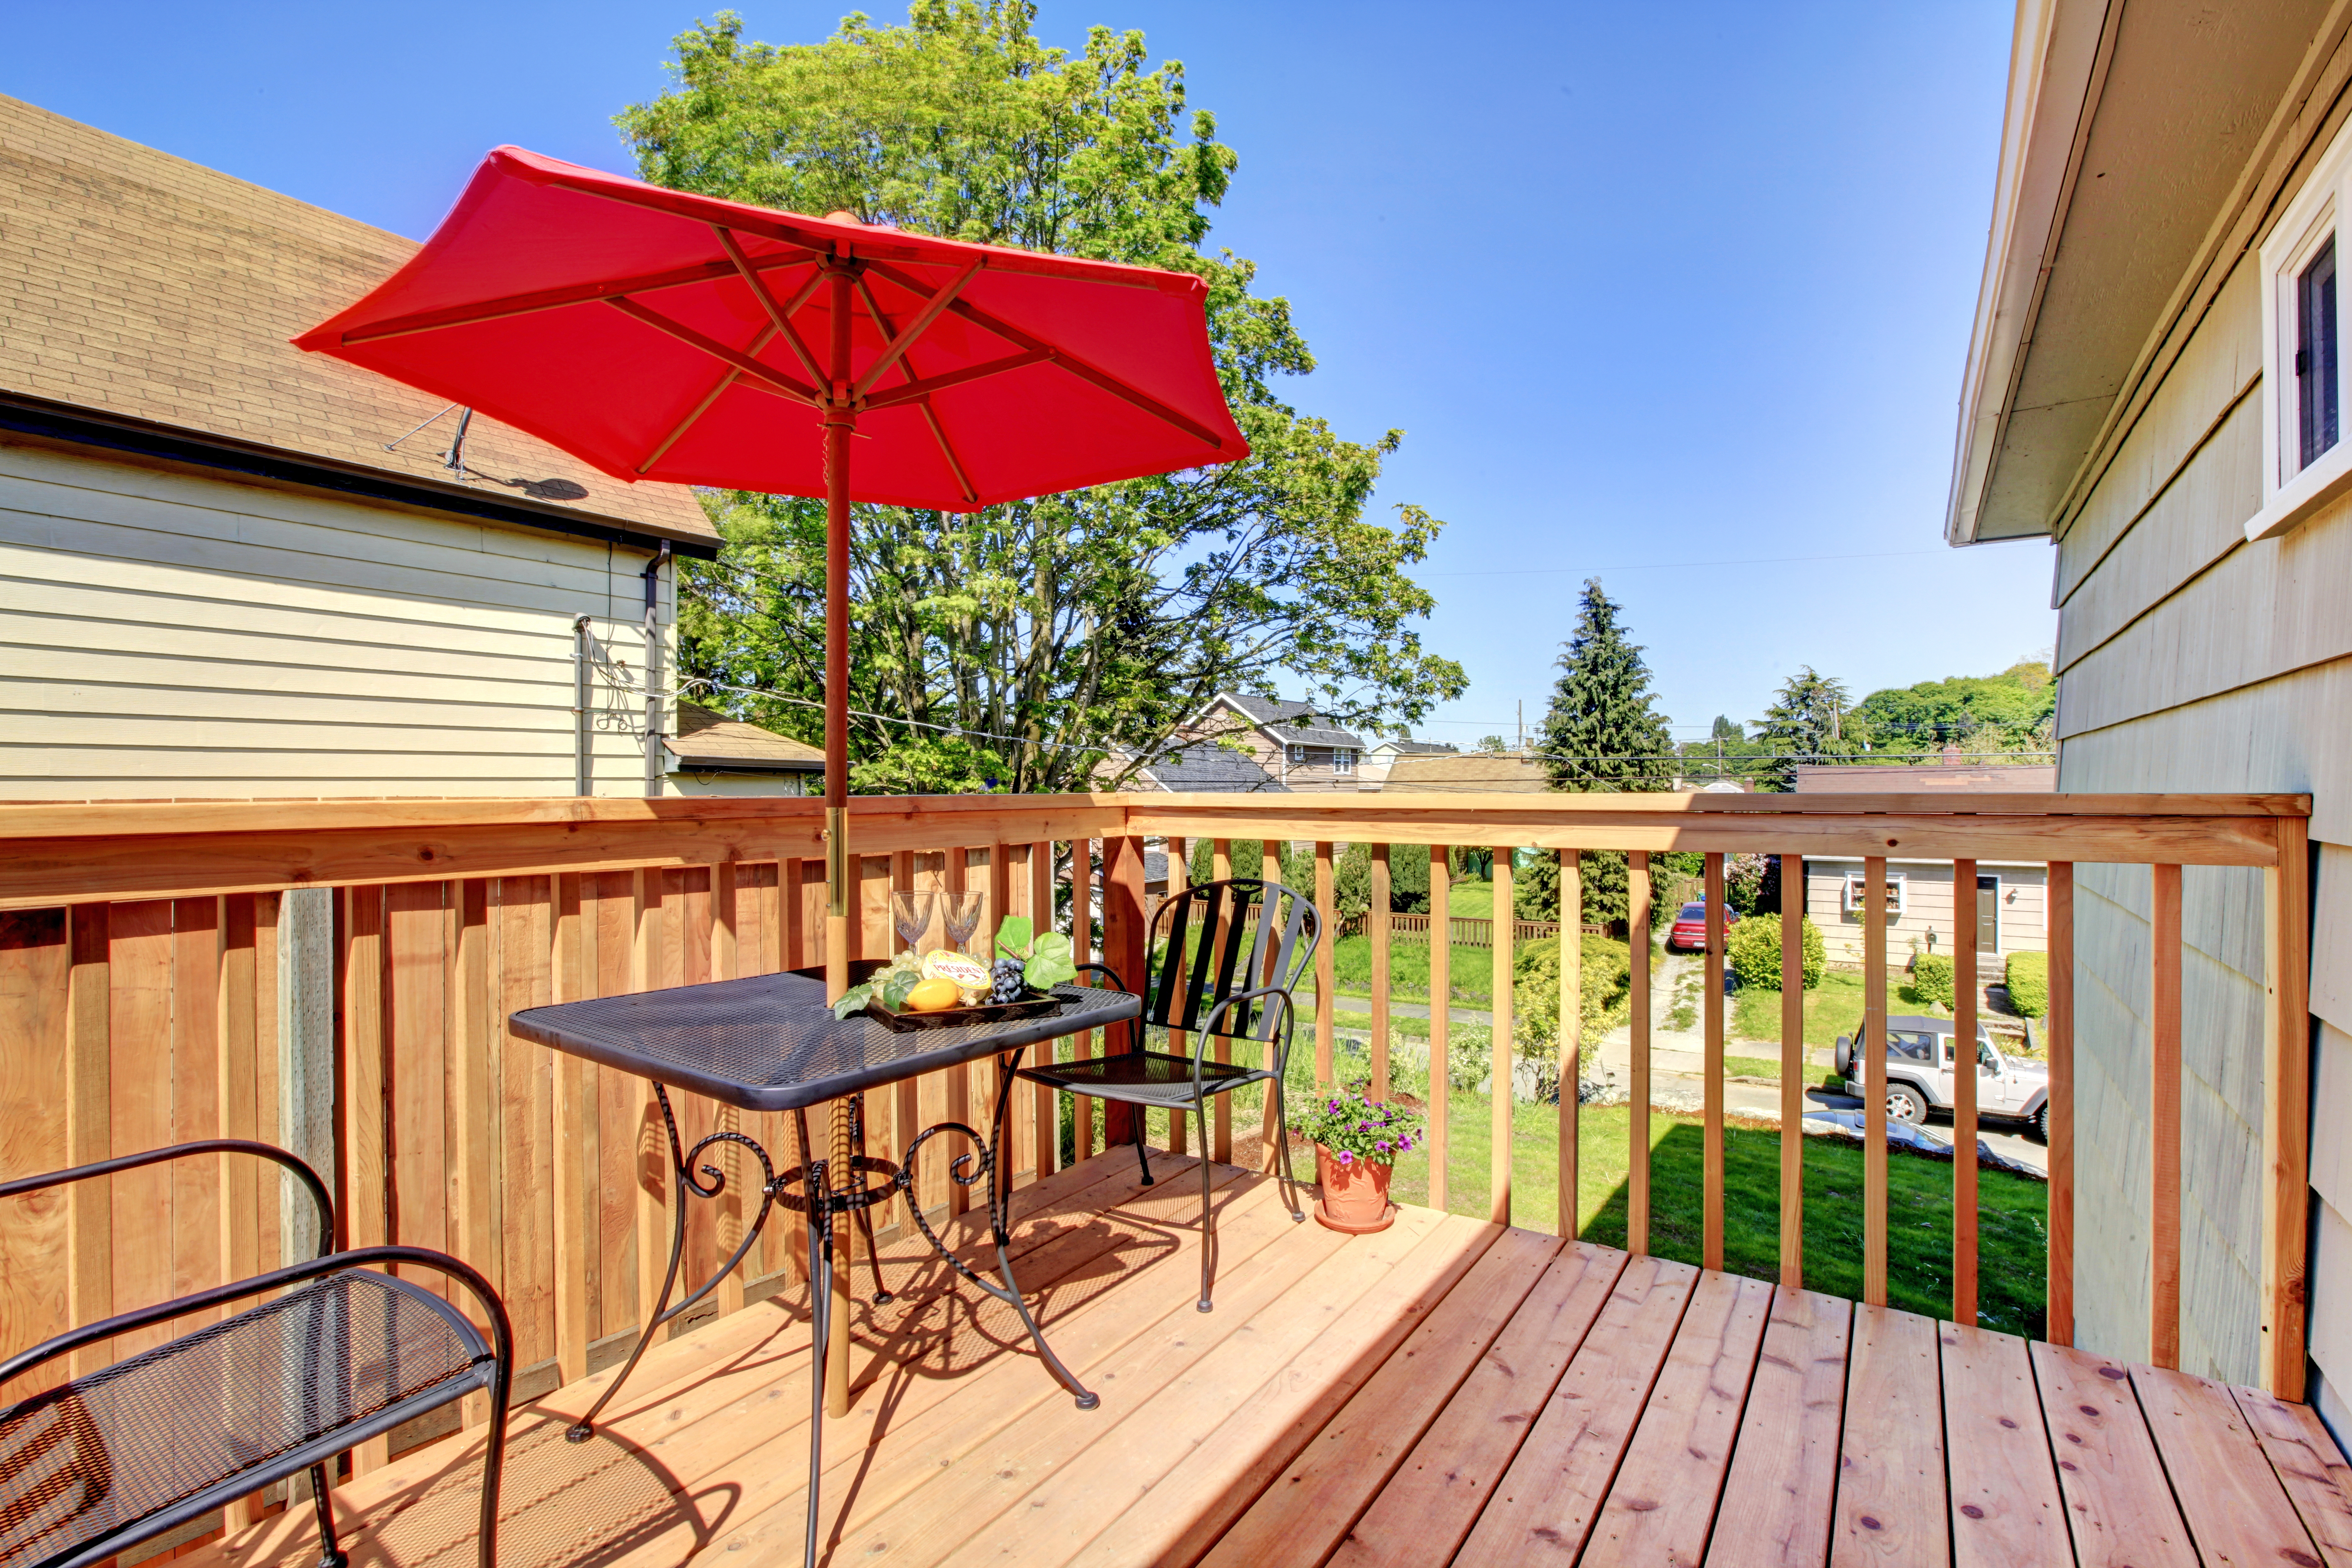 Deck with red umbrella with warm wood.